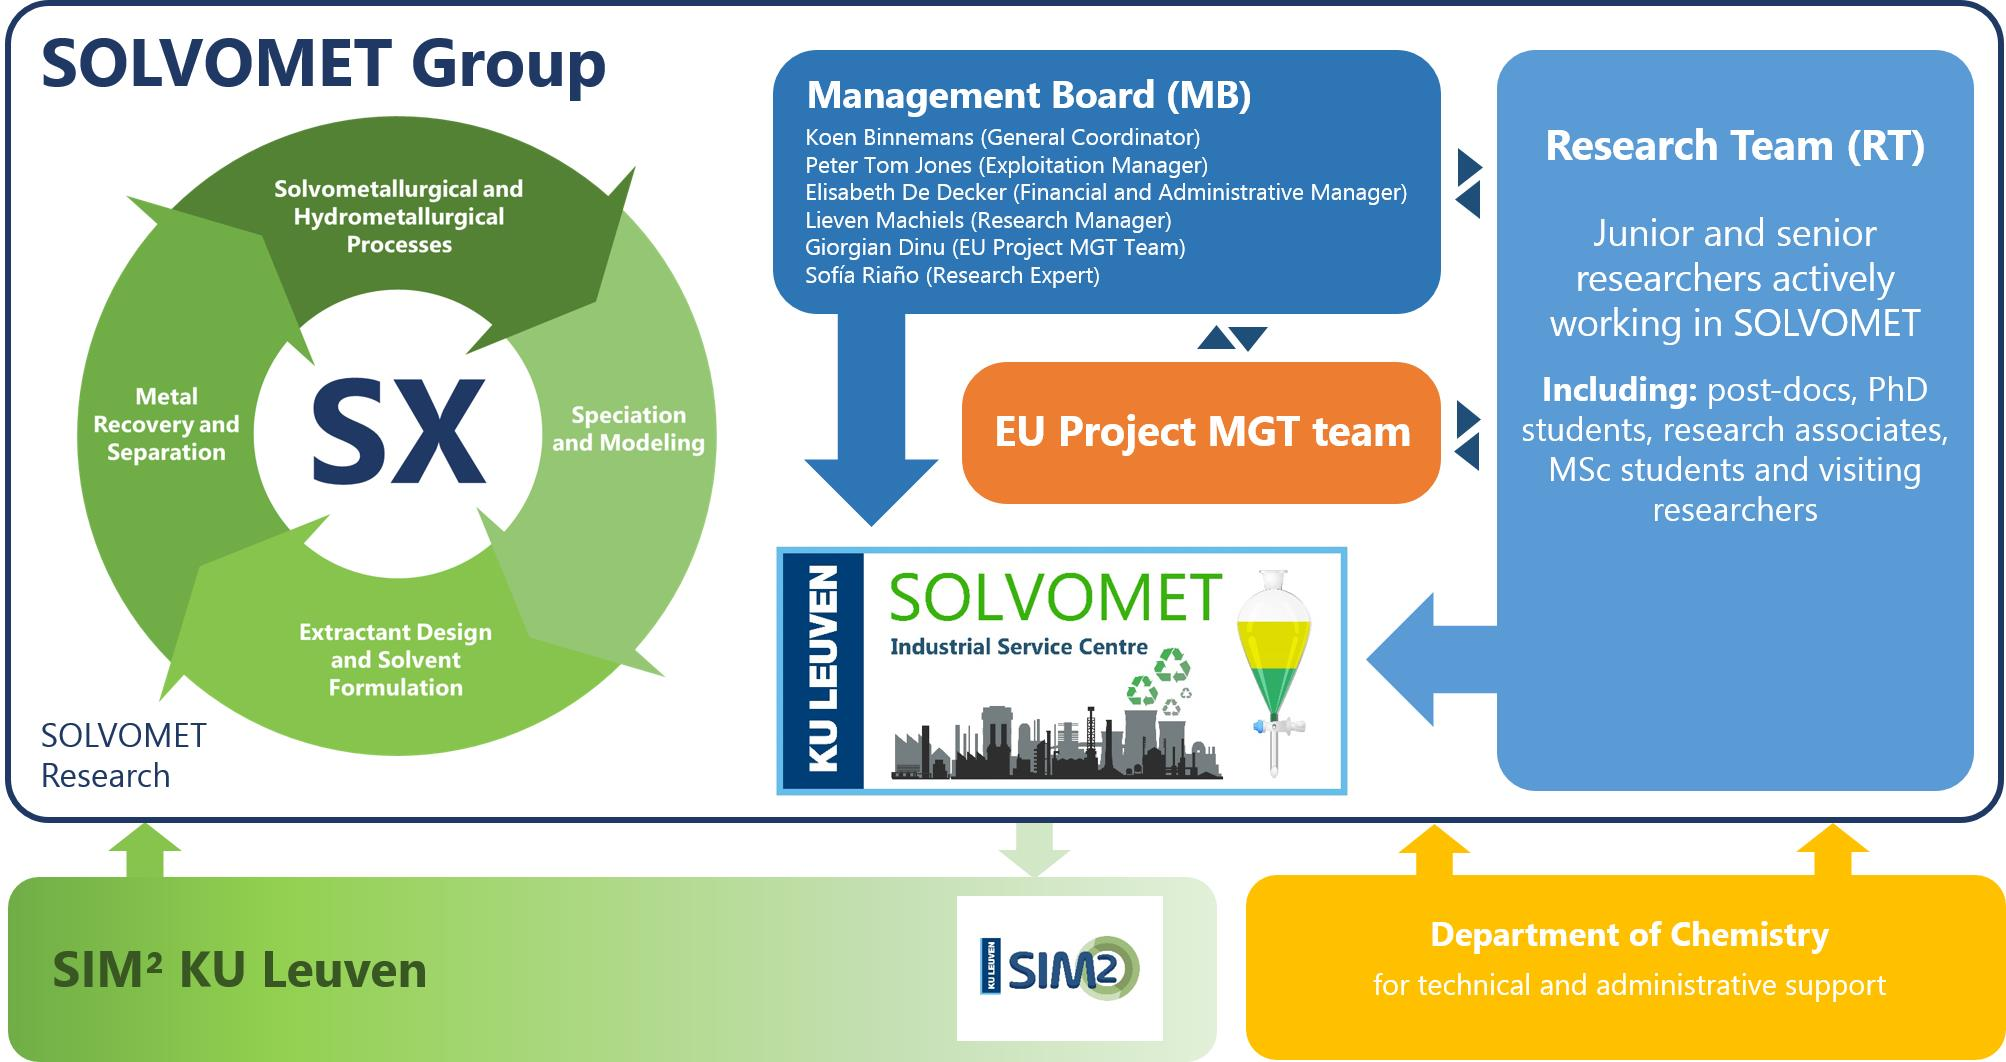 SOLVOMET Group Structure